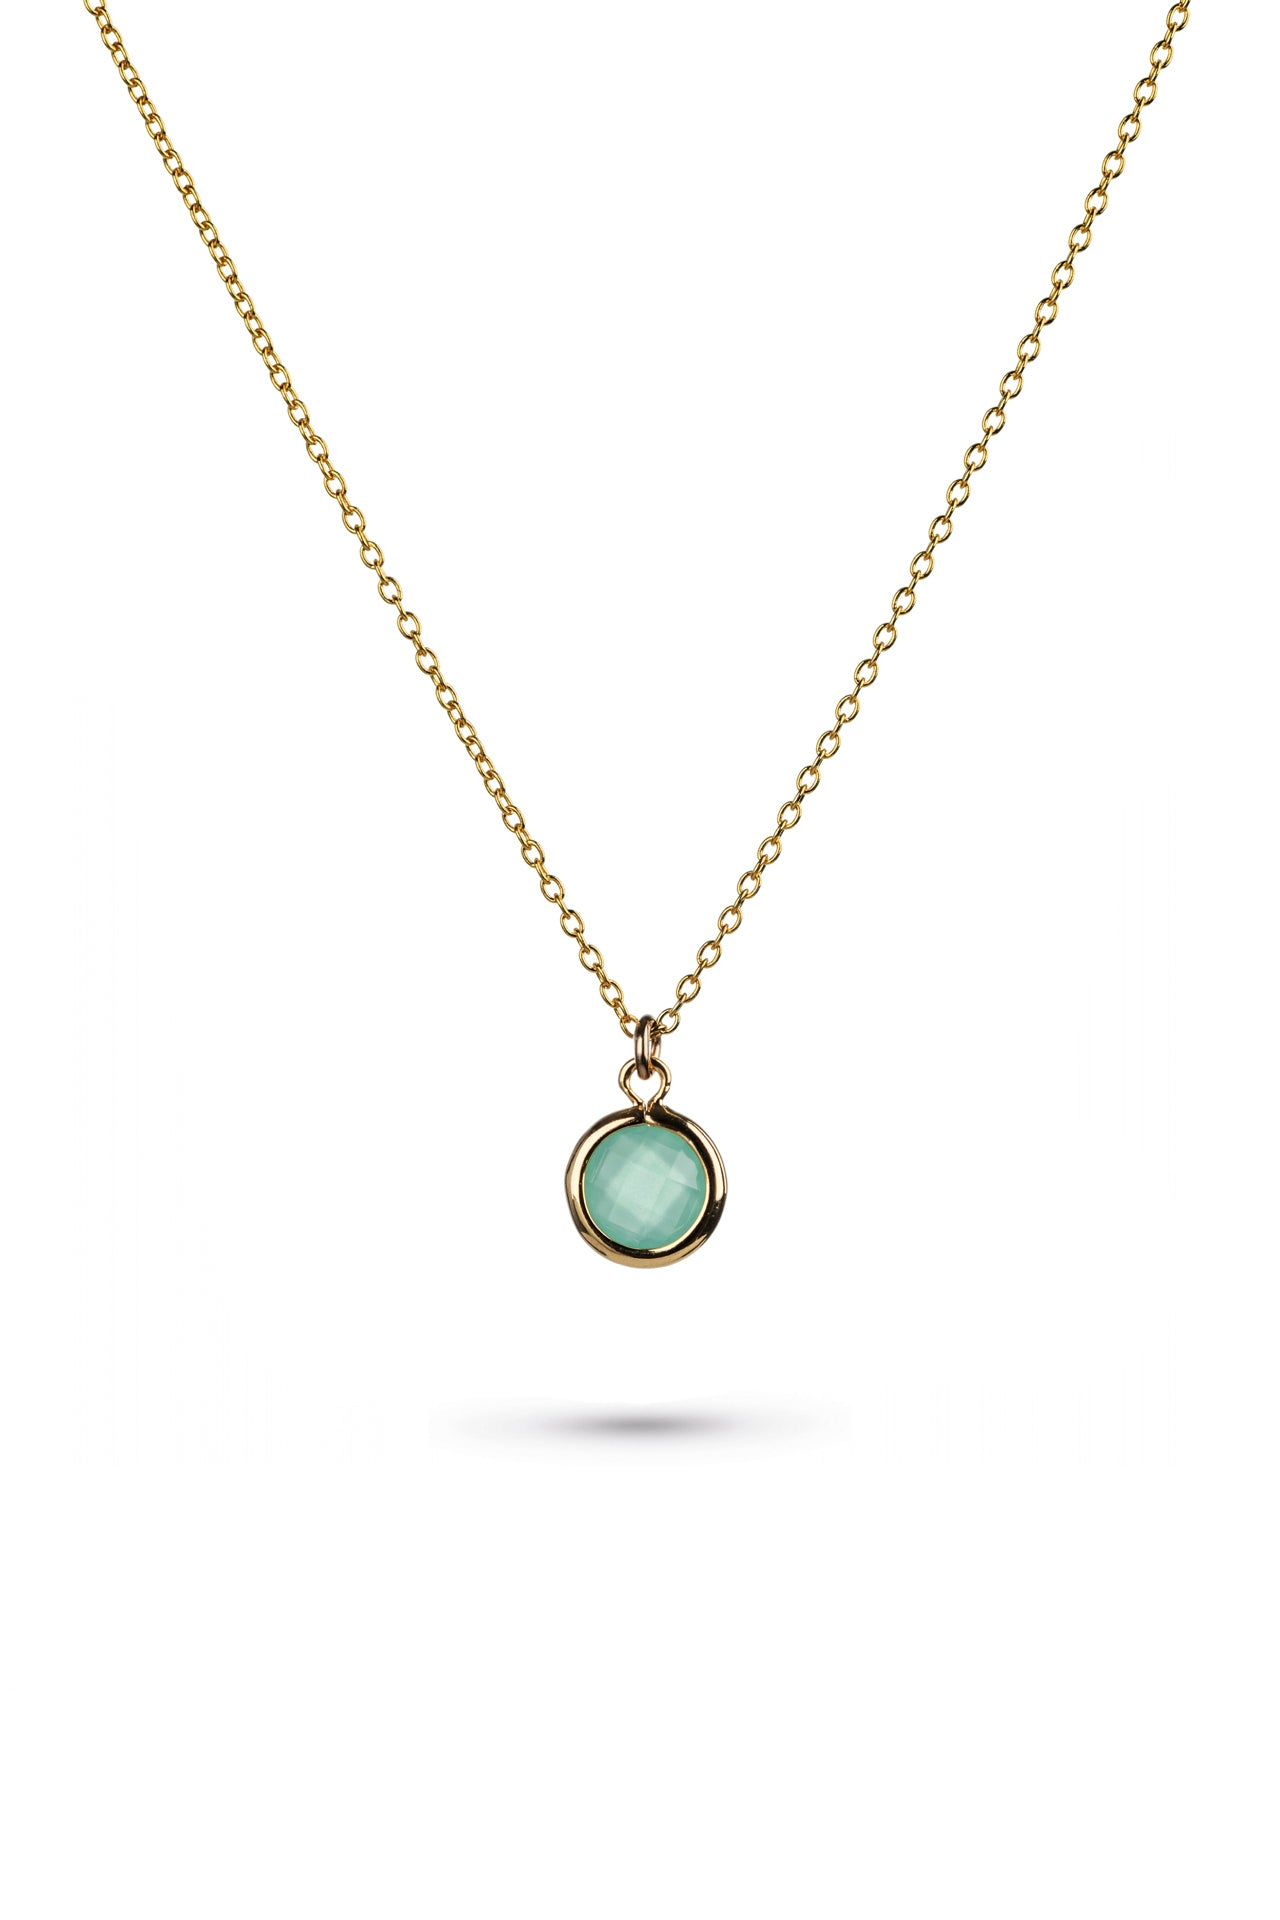 Aqua Glass Charm Gold Necklace